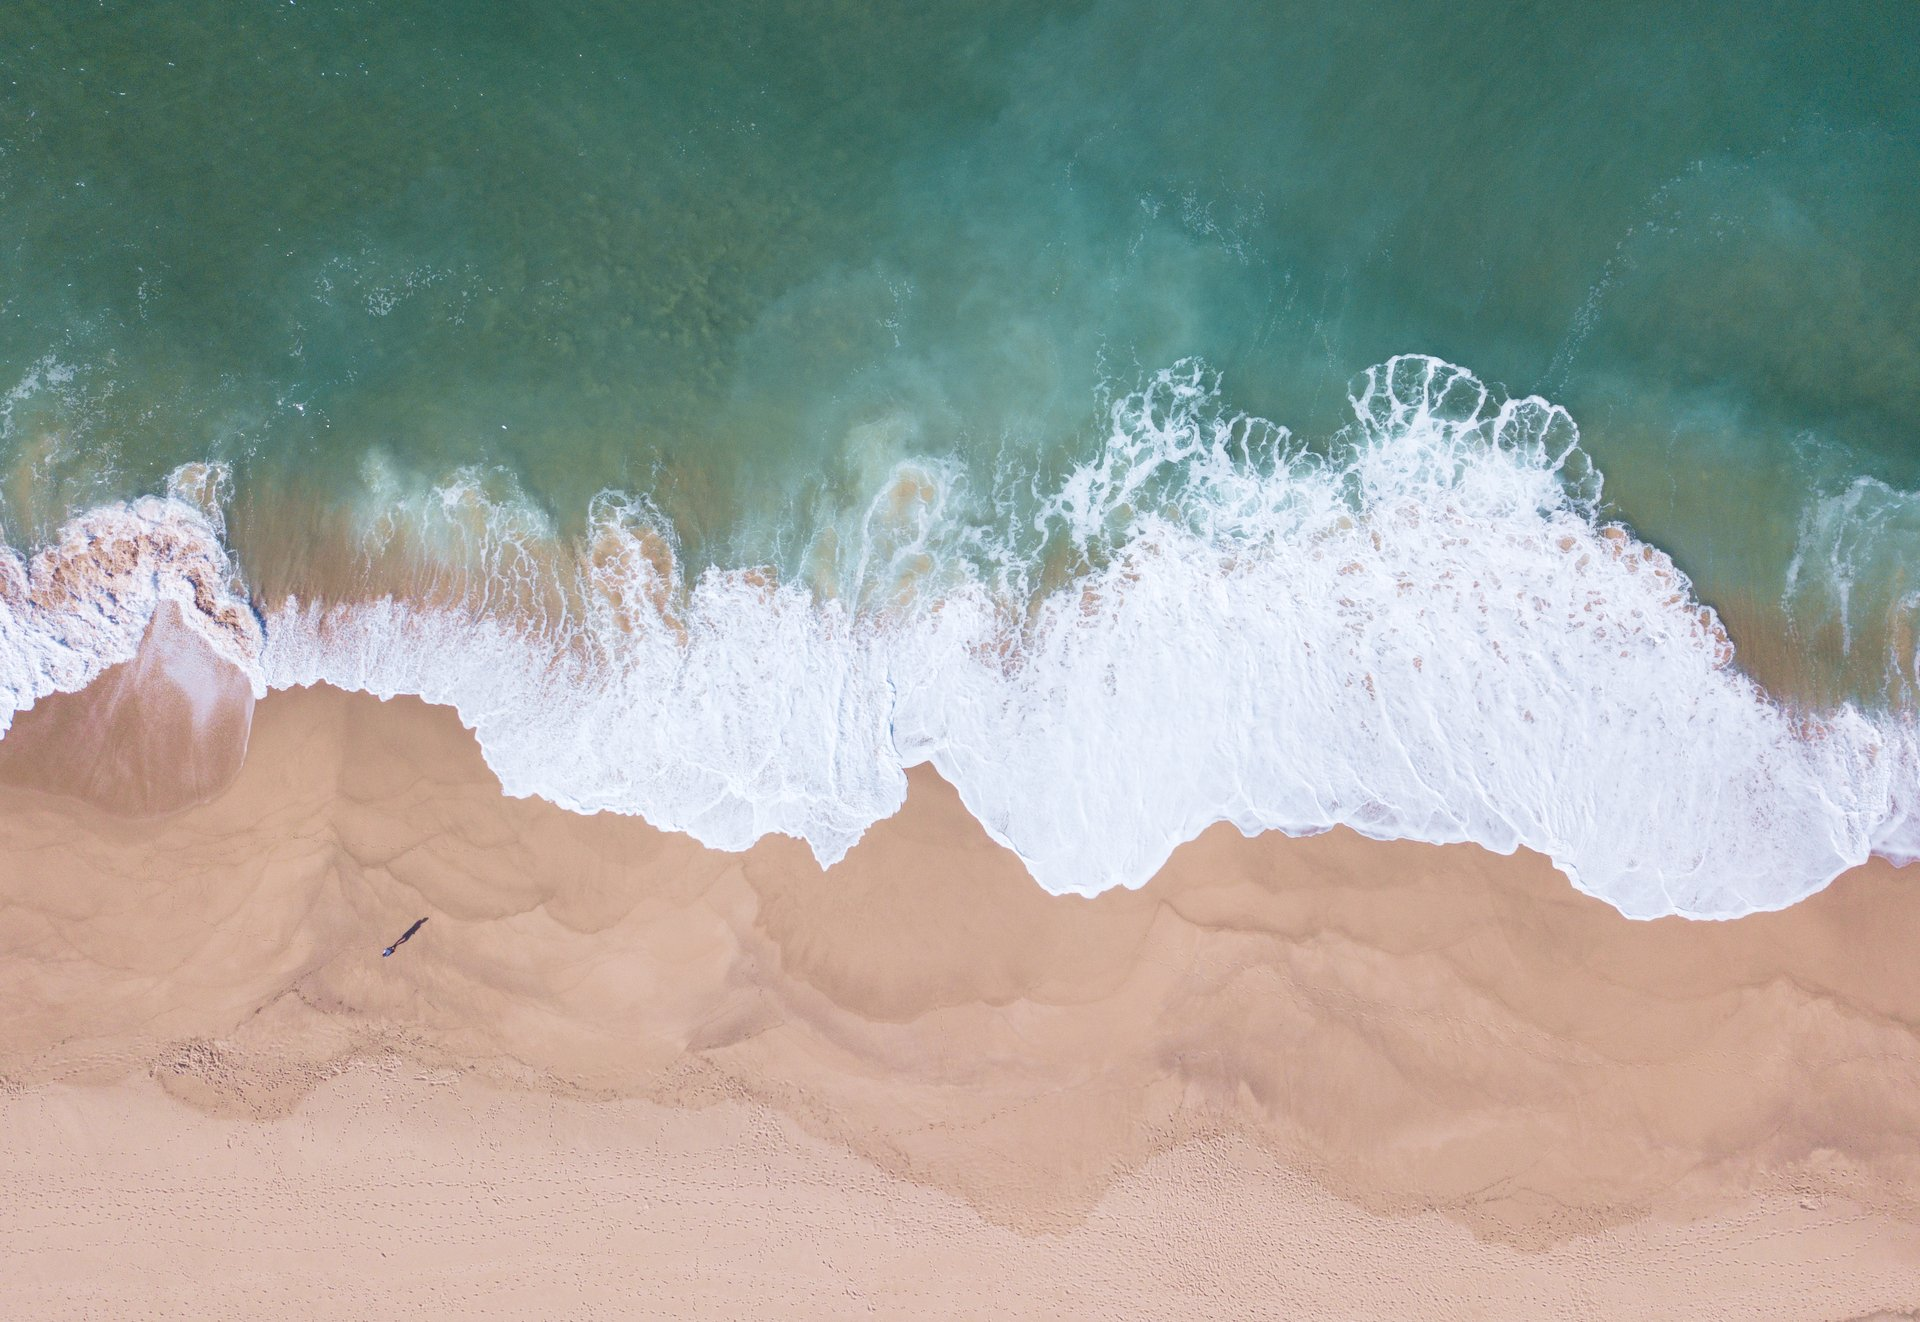 Waves lapping the beach